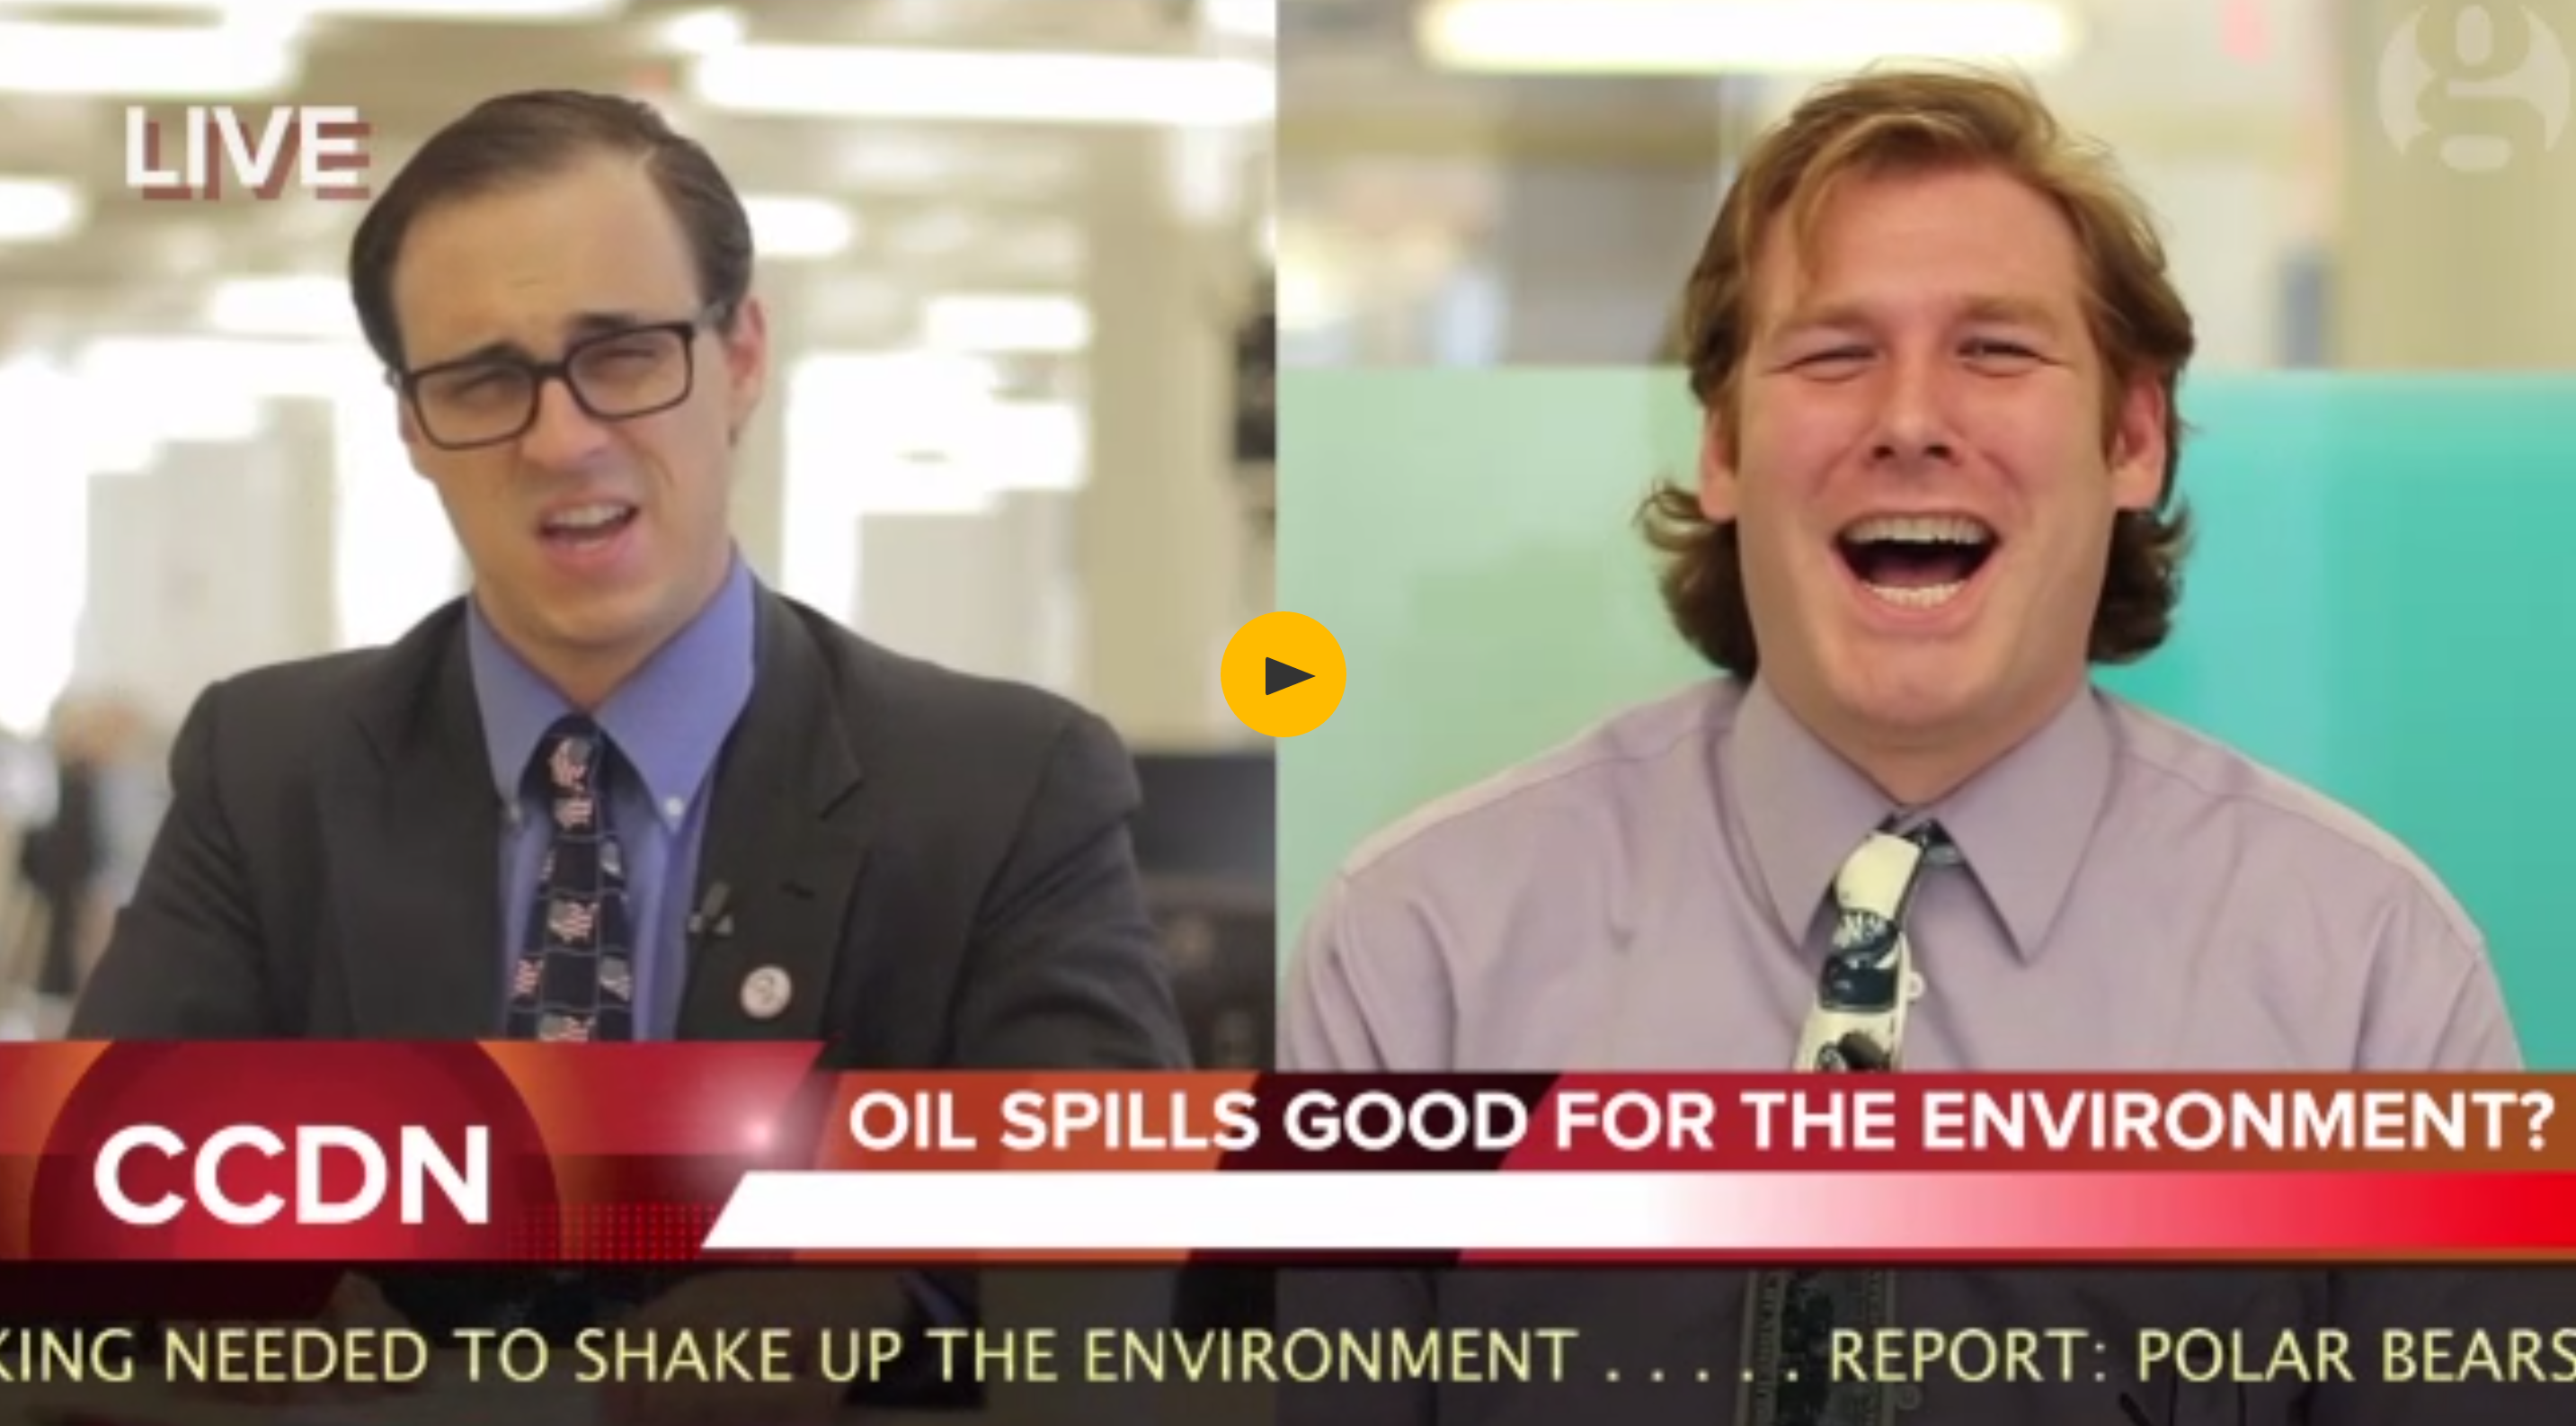 Hilarious Climate Satire Video by Guardian: 'Oil Spills Actually Totally Good For Animals'